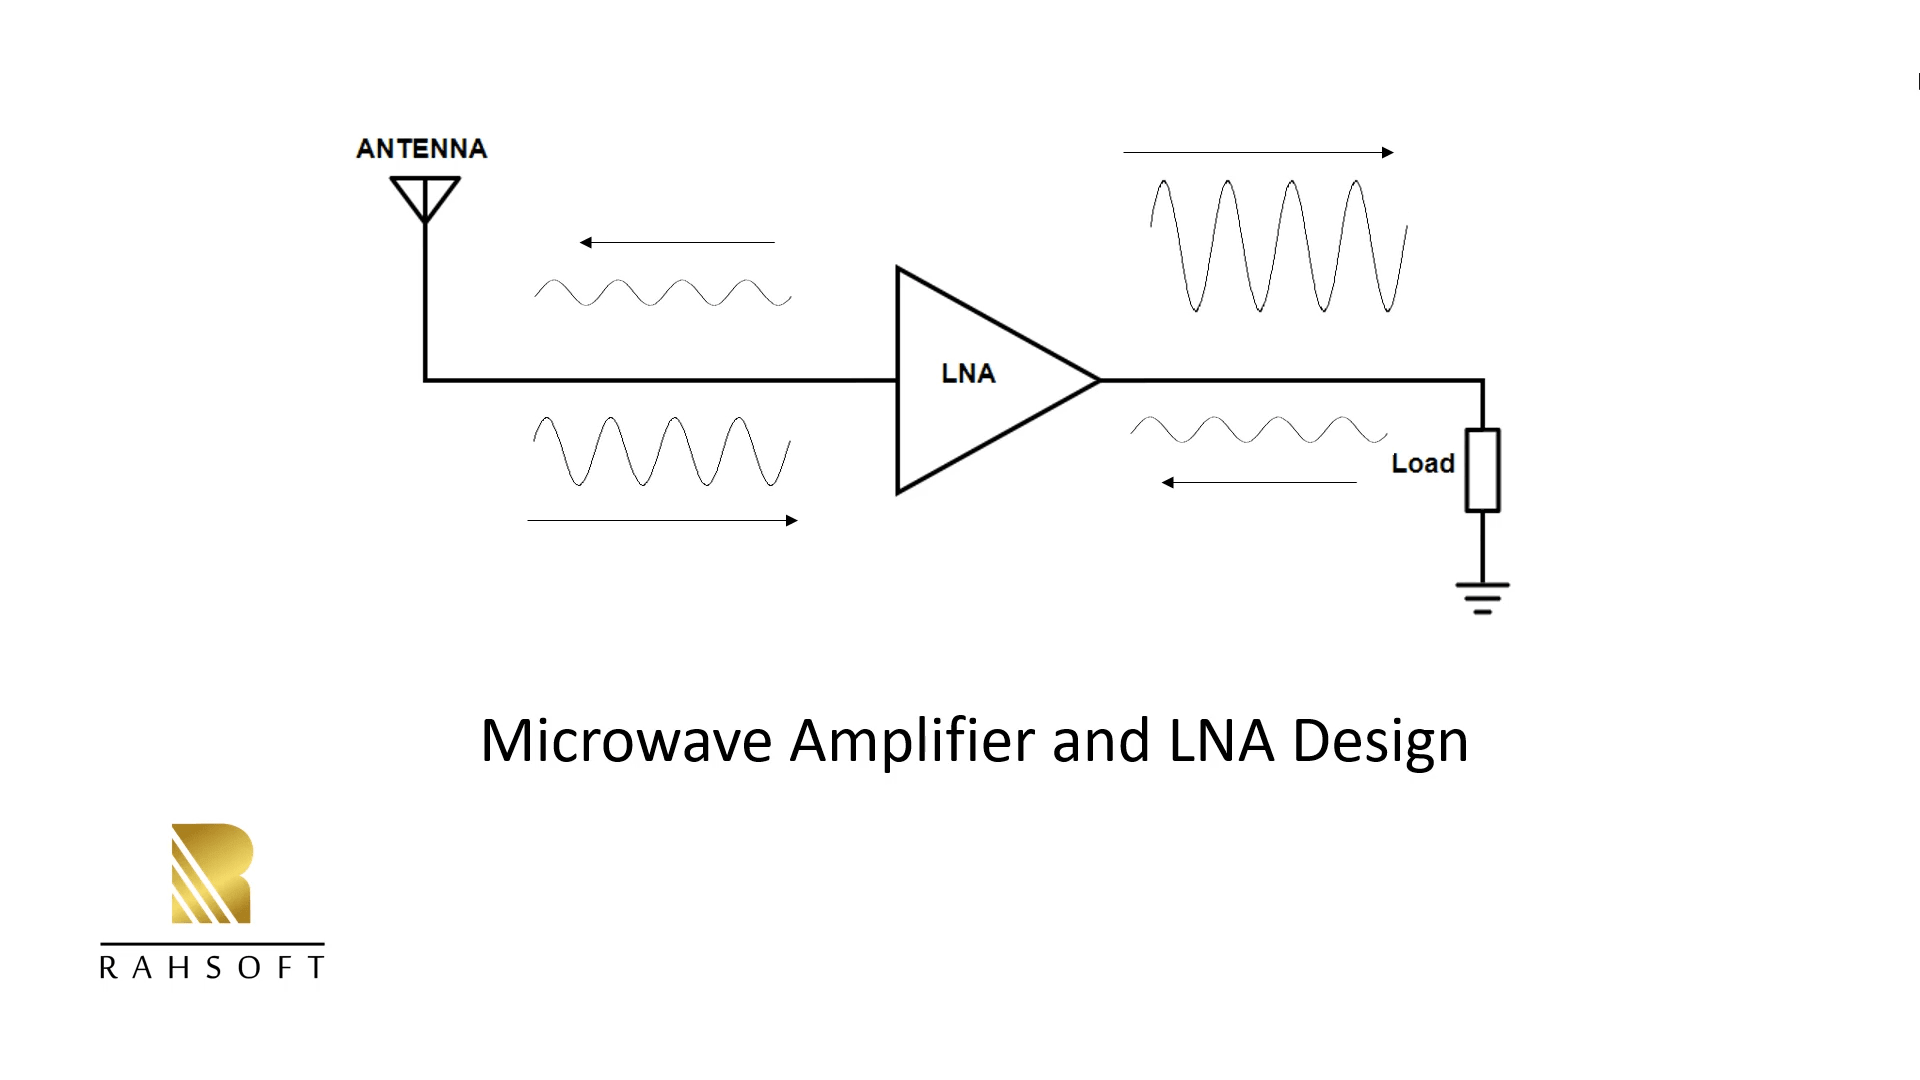 Microwave Amplifier and Low Noise Amplifier (LNA) Design Theory and Principles online course – RAHRF526